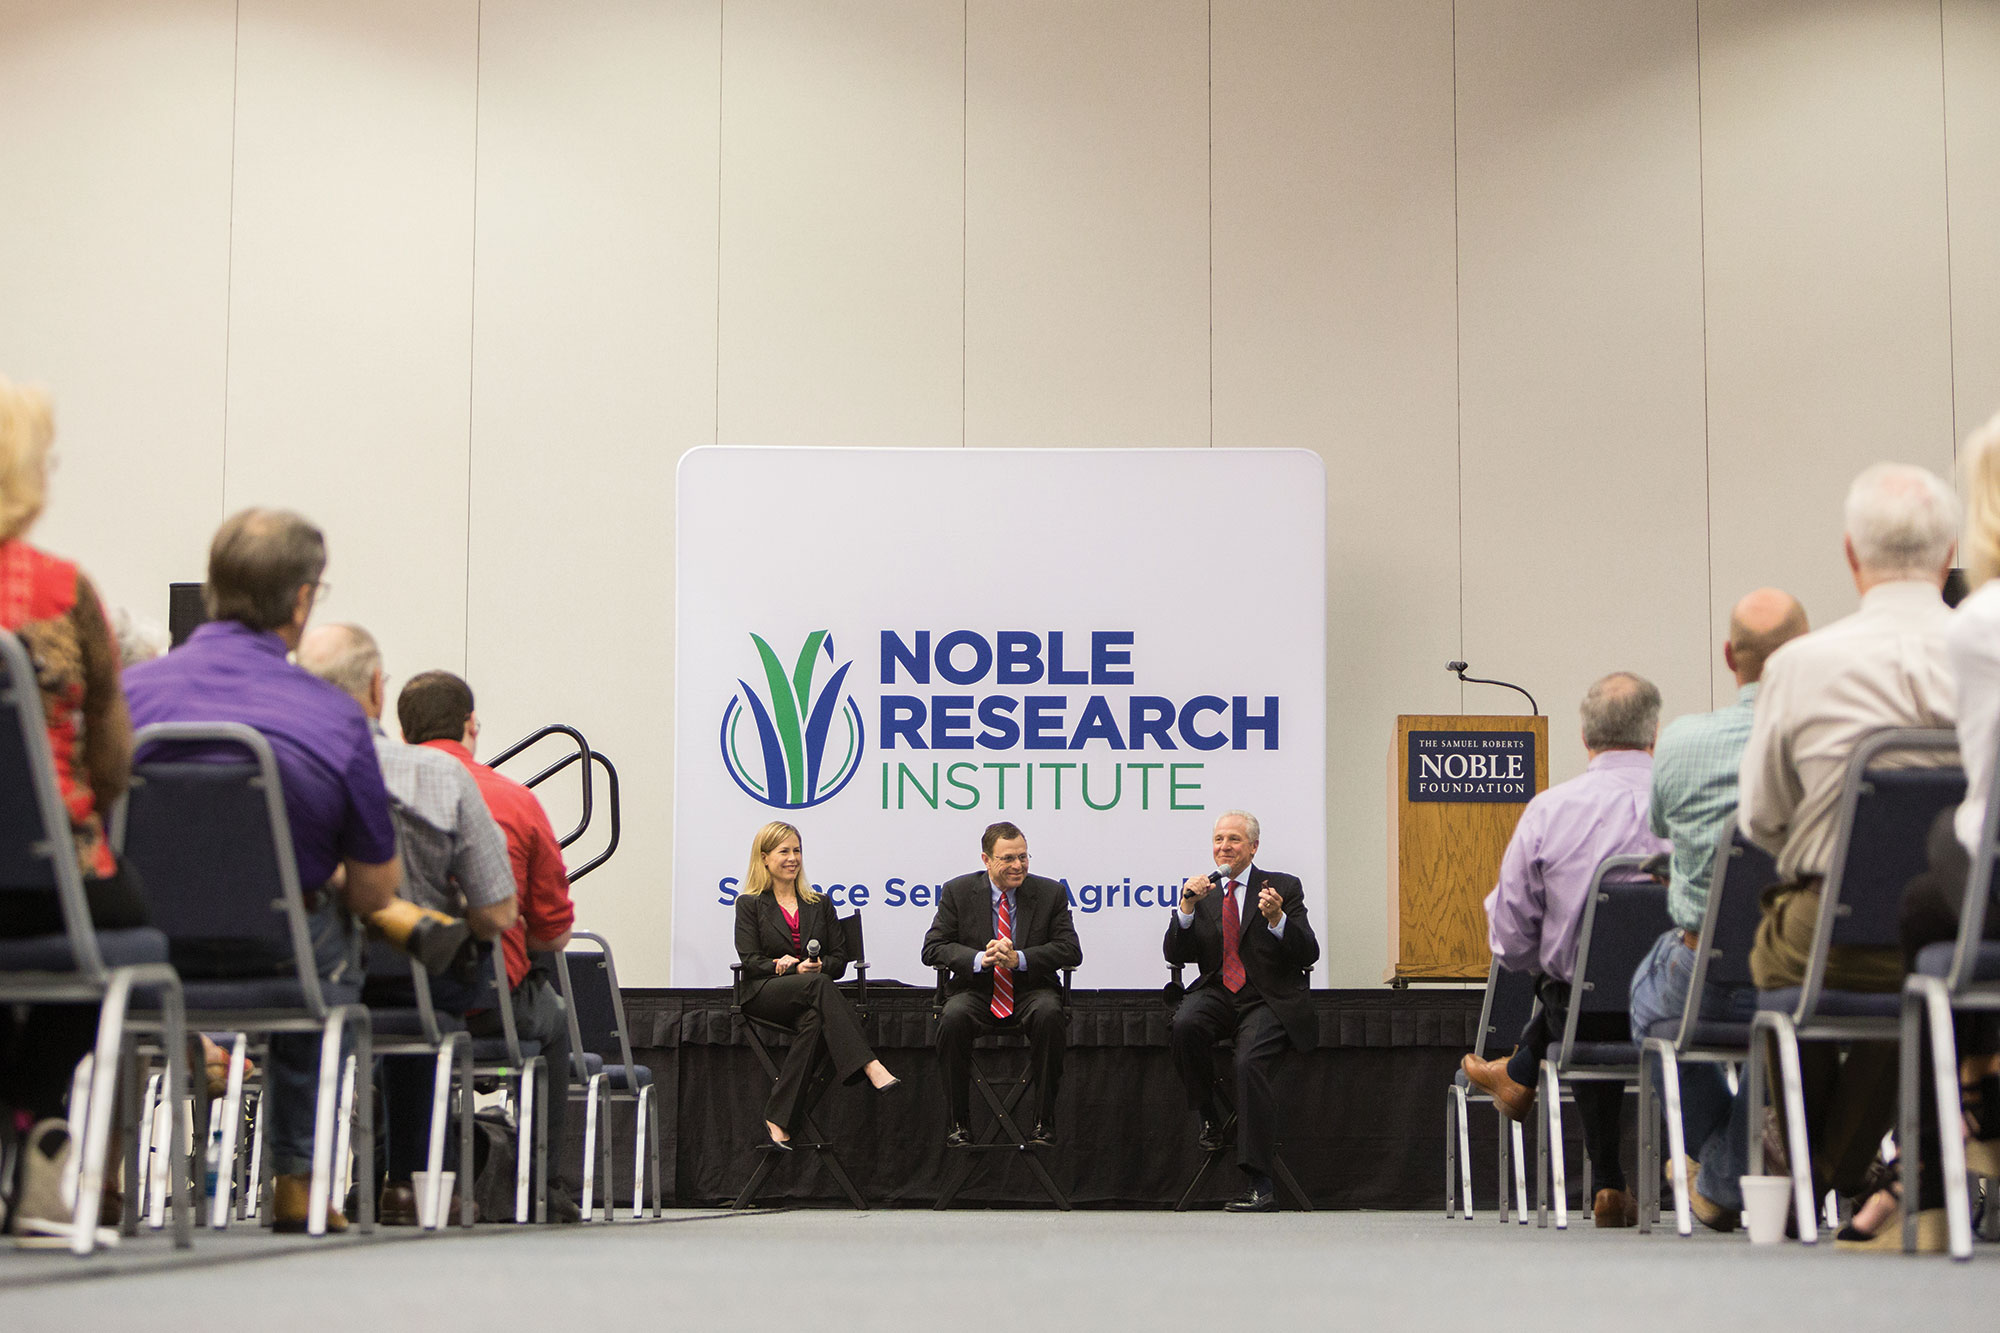 Steve Rhines (center) answers questions alongside former President Bill Buckner and former Director of Philanthropy, Engagement and Project Management Mary Kate Wilson during the Ardmore community announcement that the Noble Foundation would become known as the Noble Research Institute.